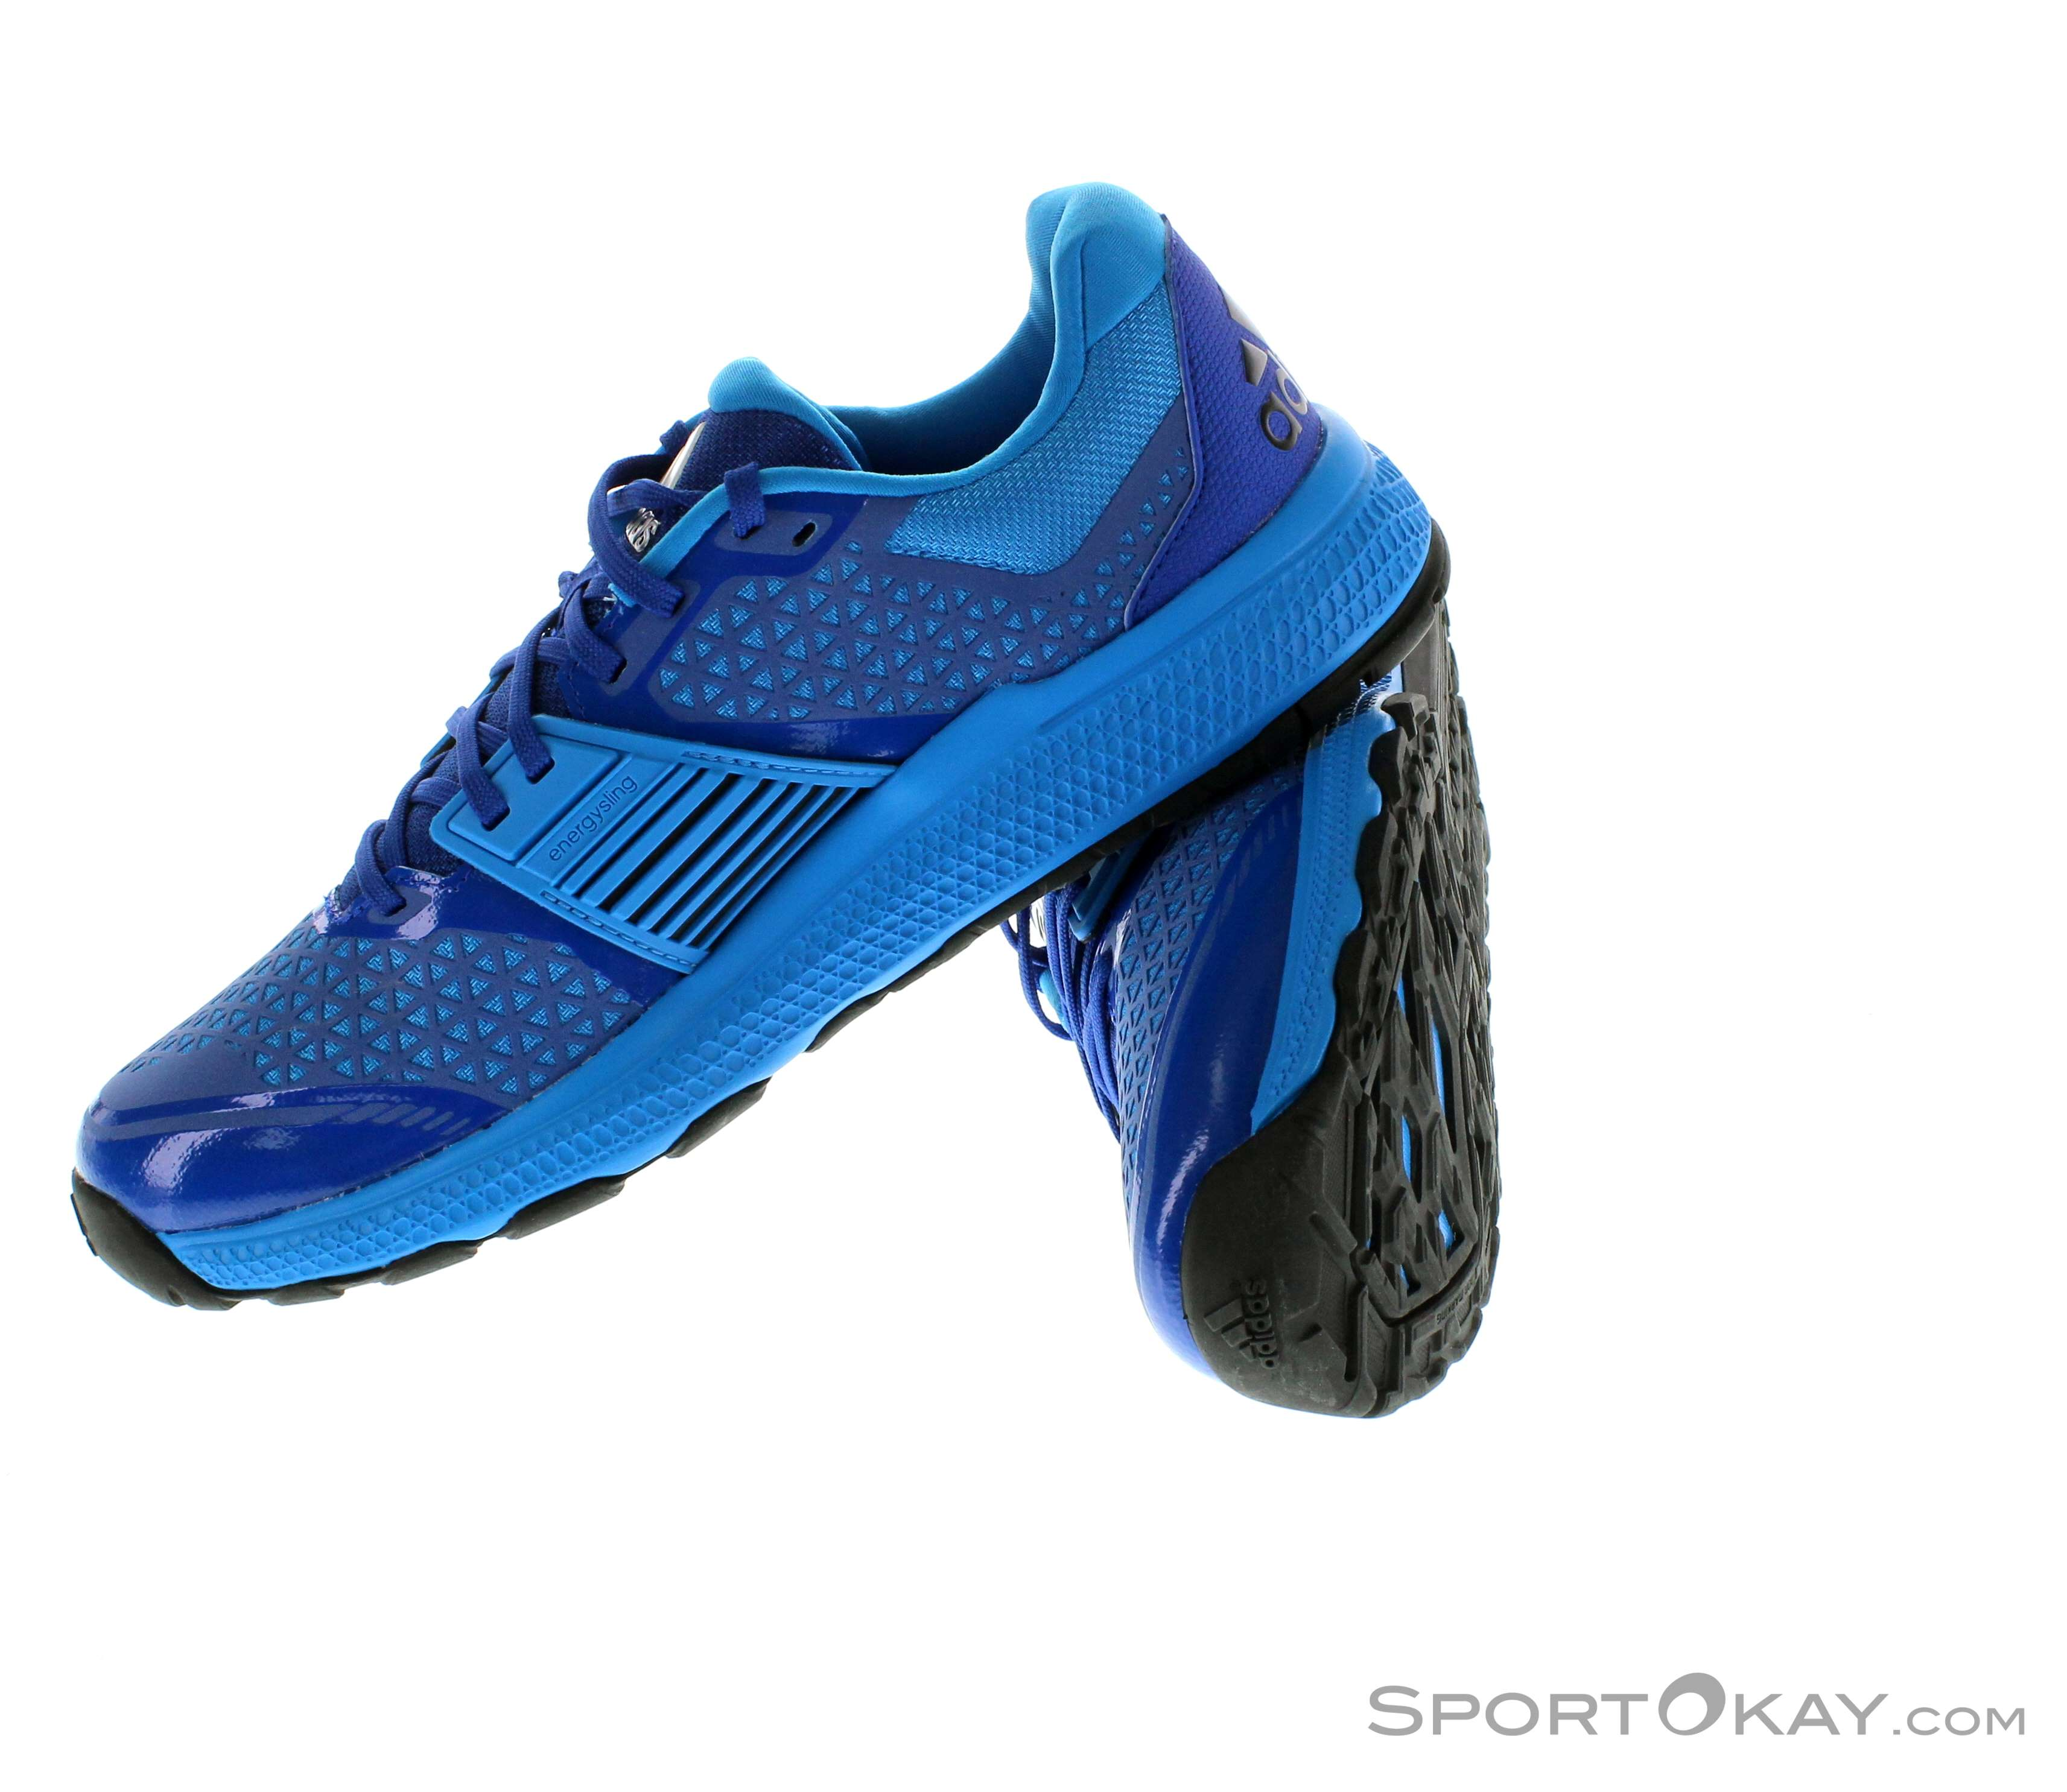 nike free run 5.0 blue hero atomic redster